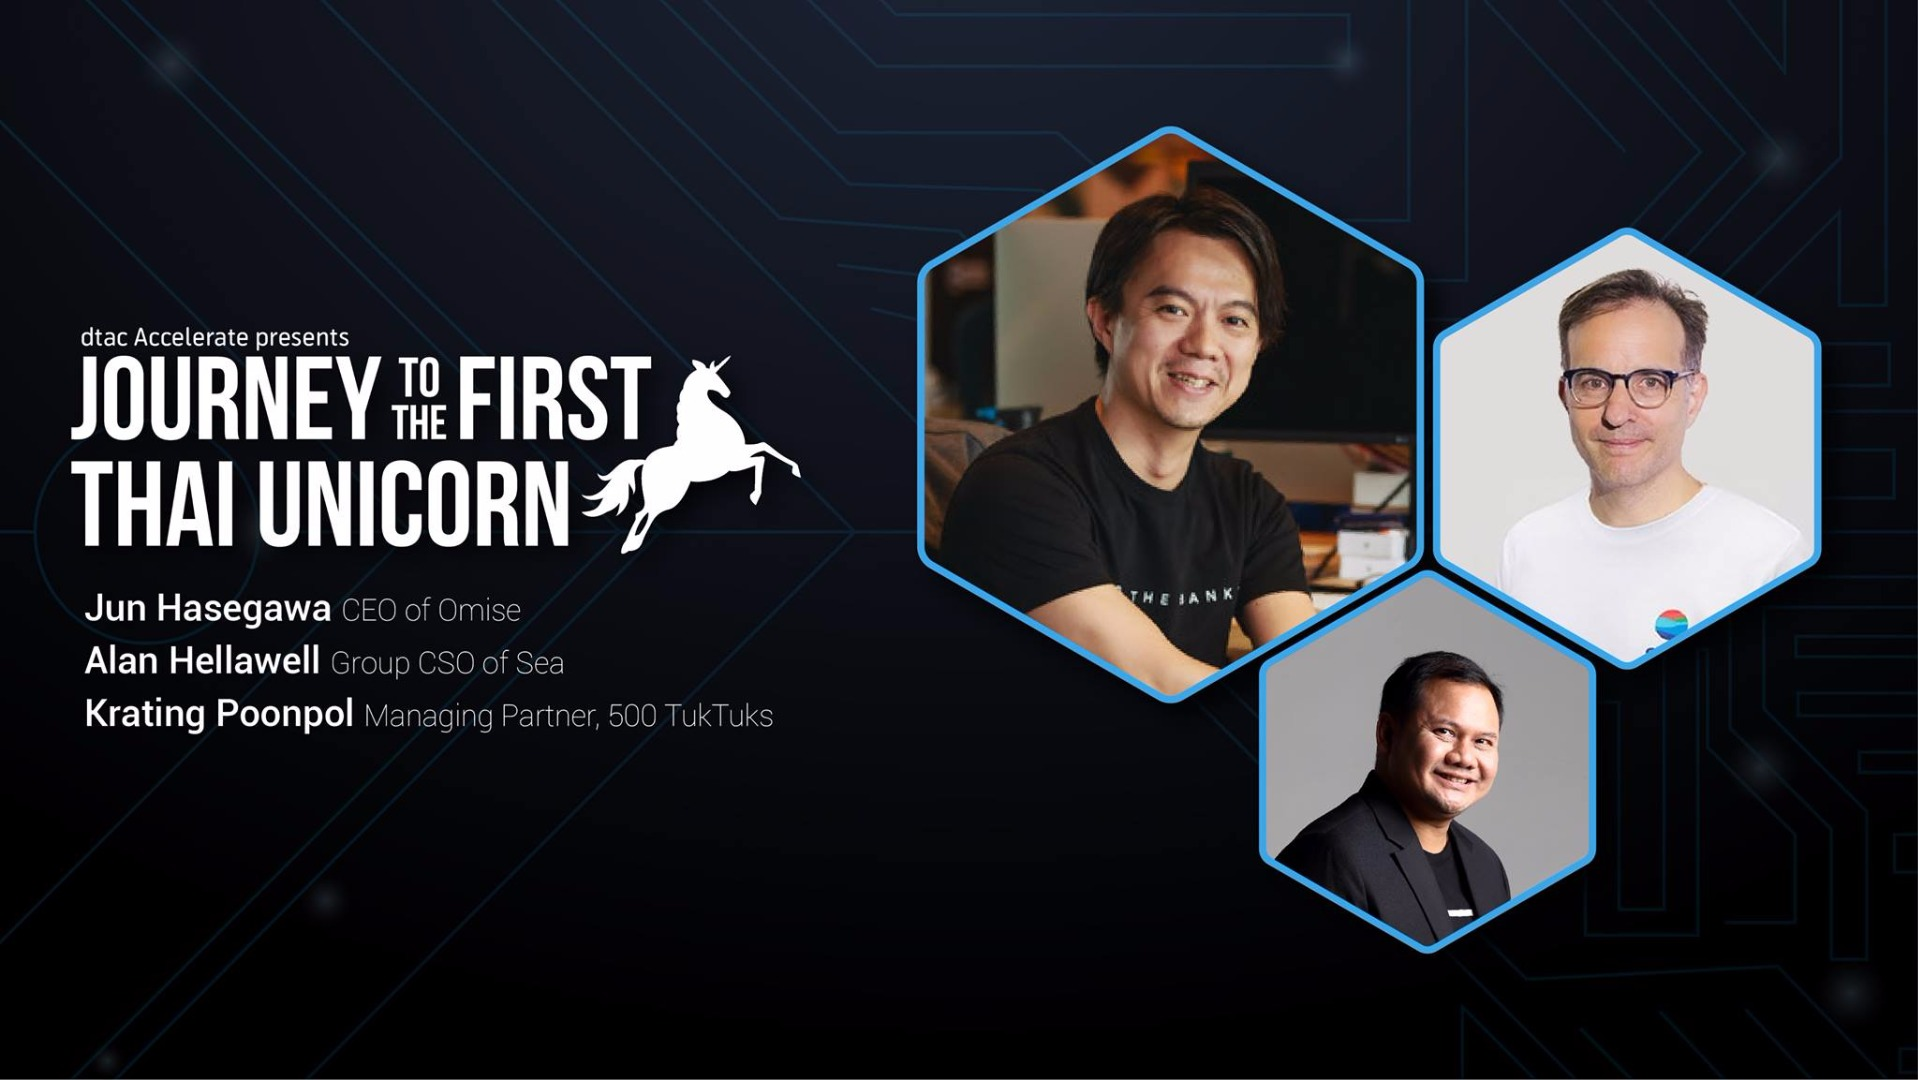 ชมย้อนหลัง dtac Accelerate presents Journey to the First Thai Unicorn